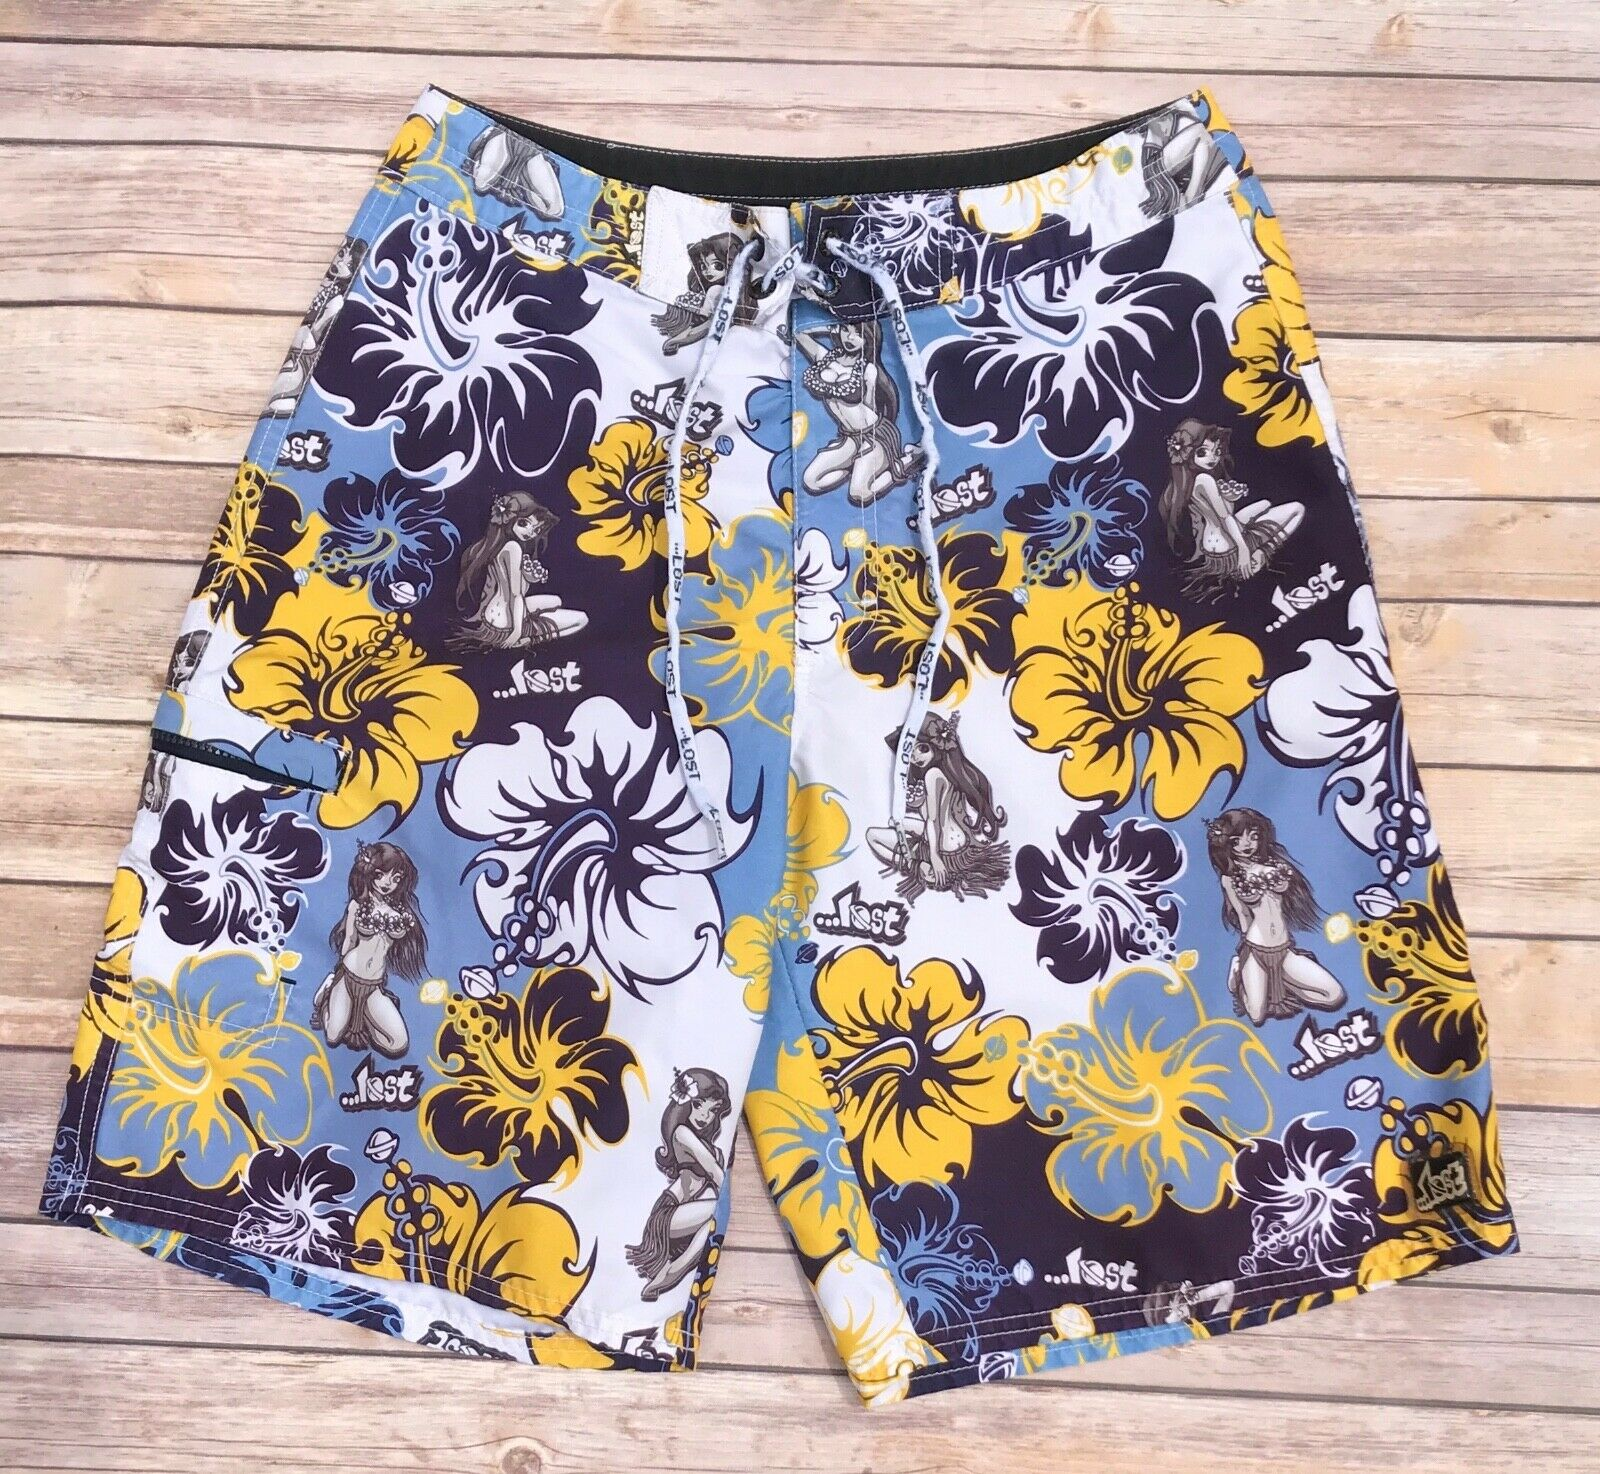 Lost bluee Yellow Tropical Floral Hula Pin Up Girl Swim Trunks Board Shorts 31